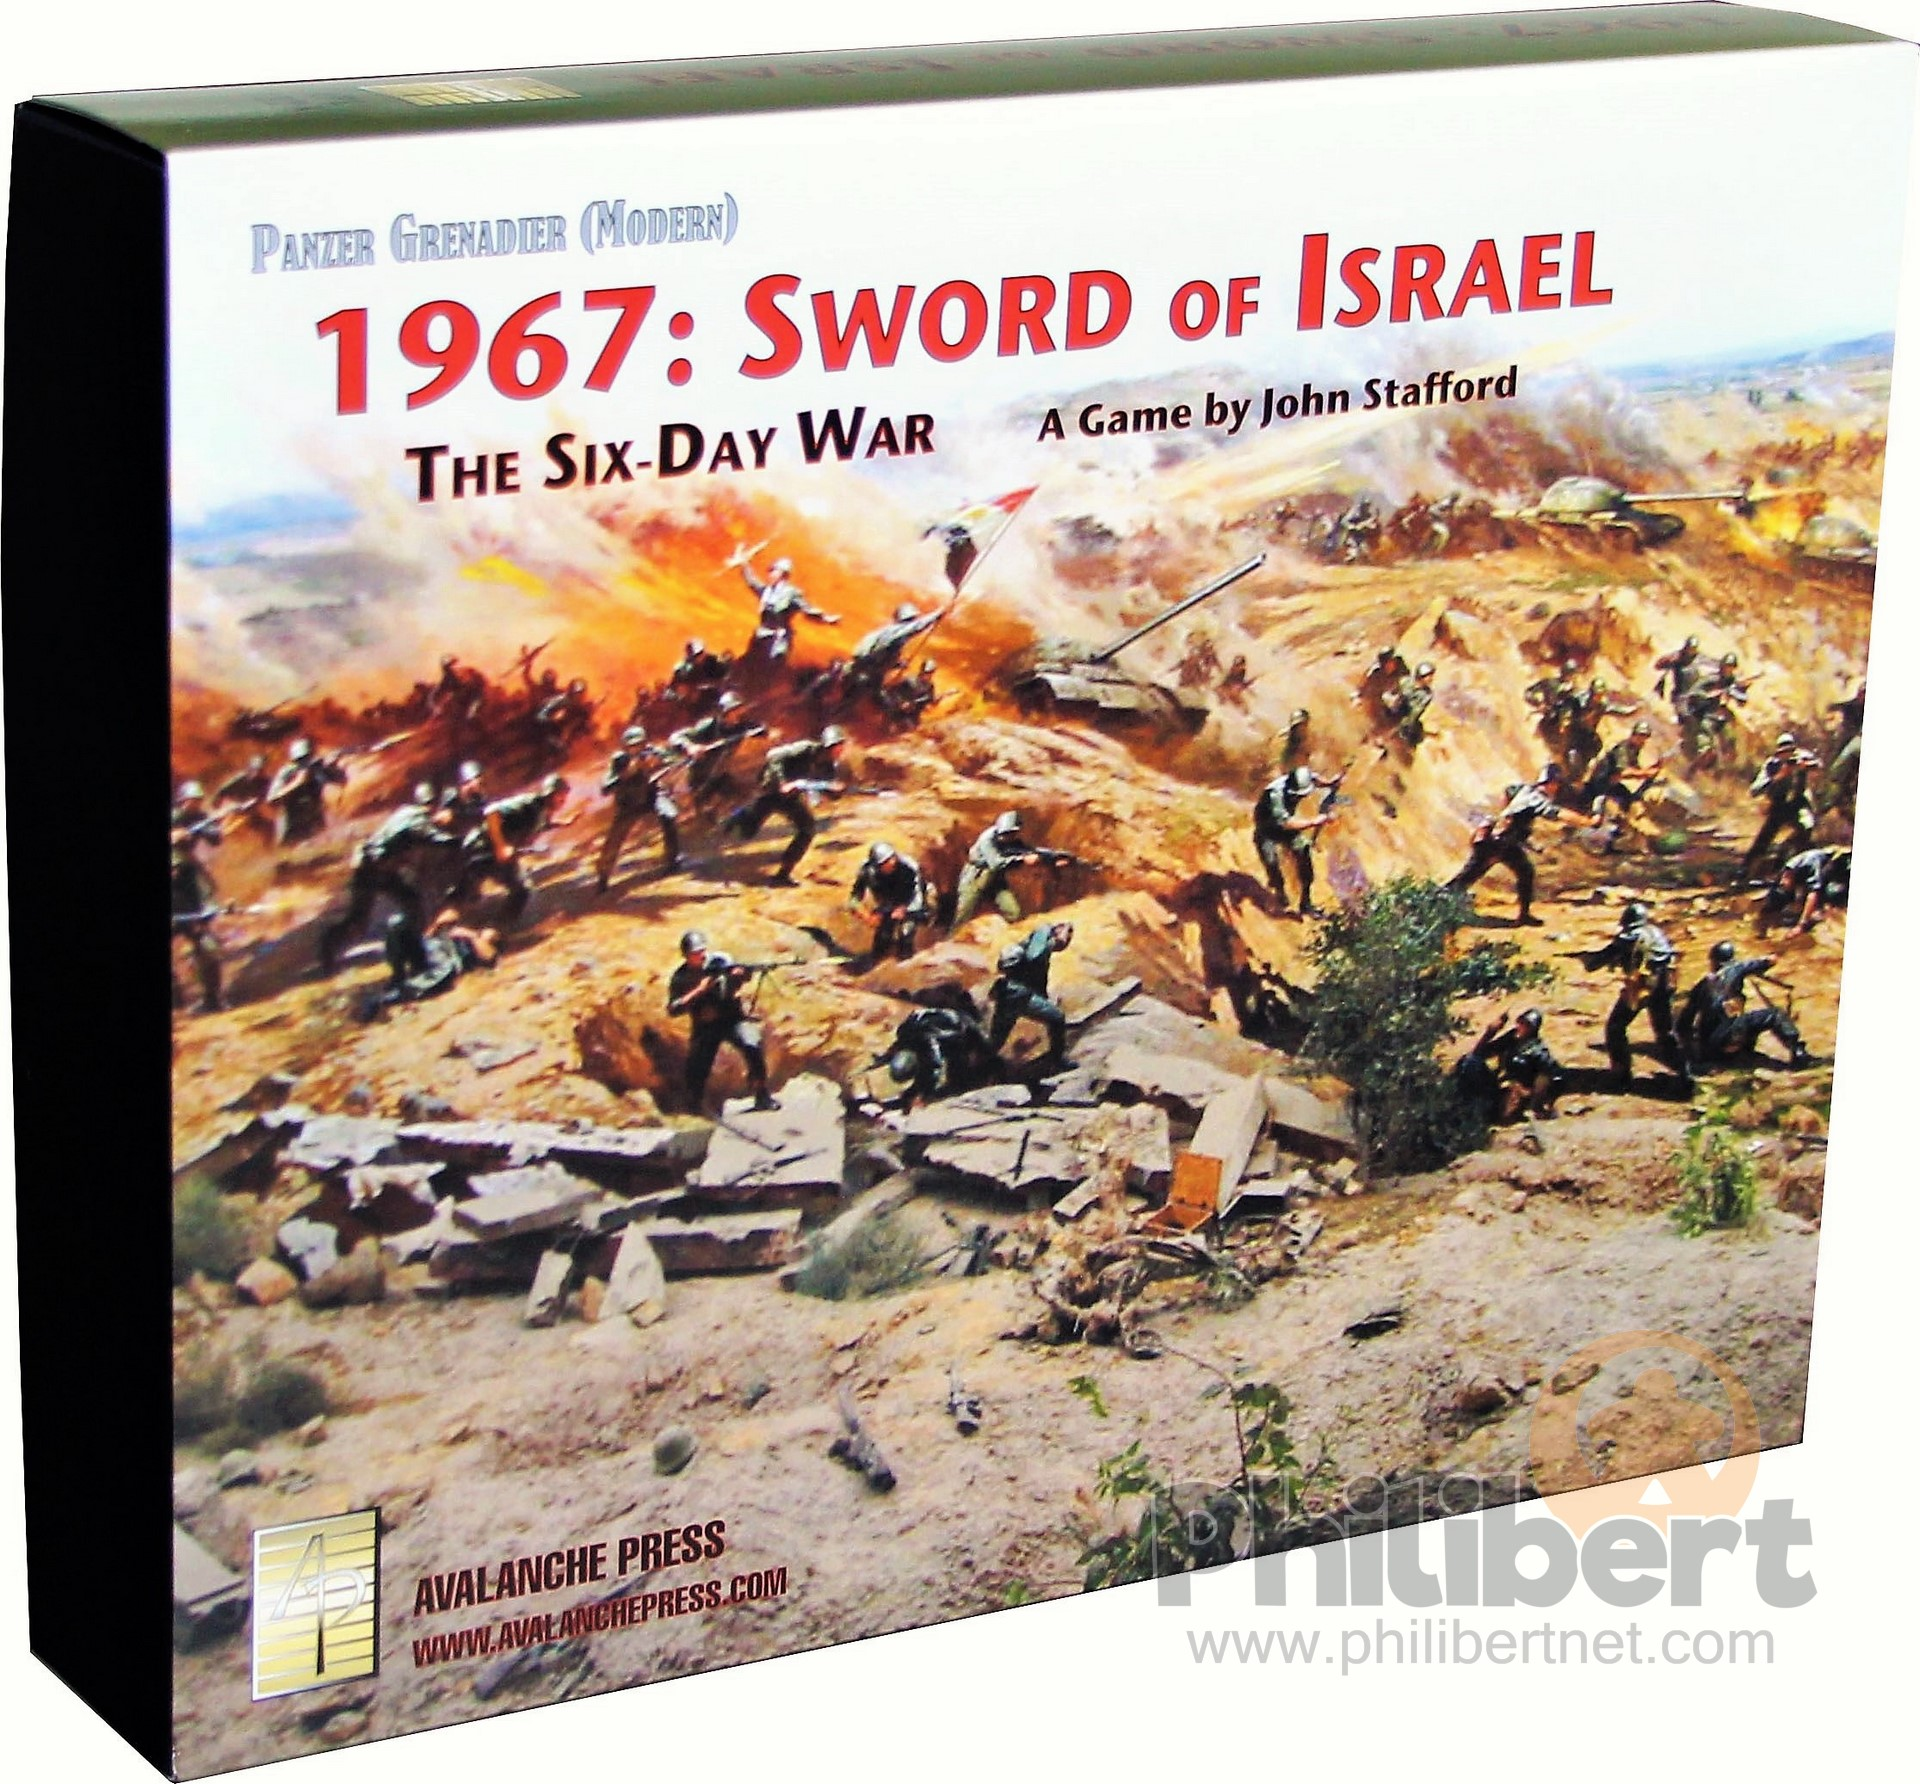 Panzer Grenadier Modern - 1967: Sword of Israel